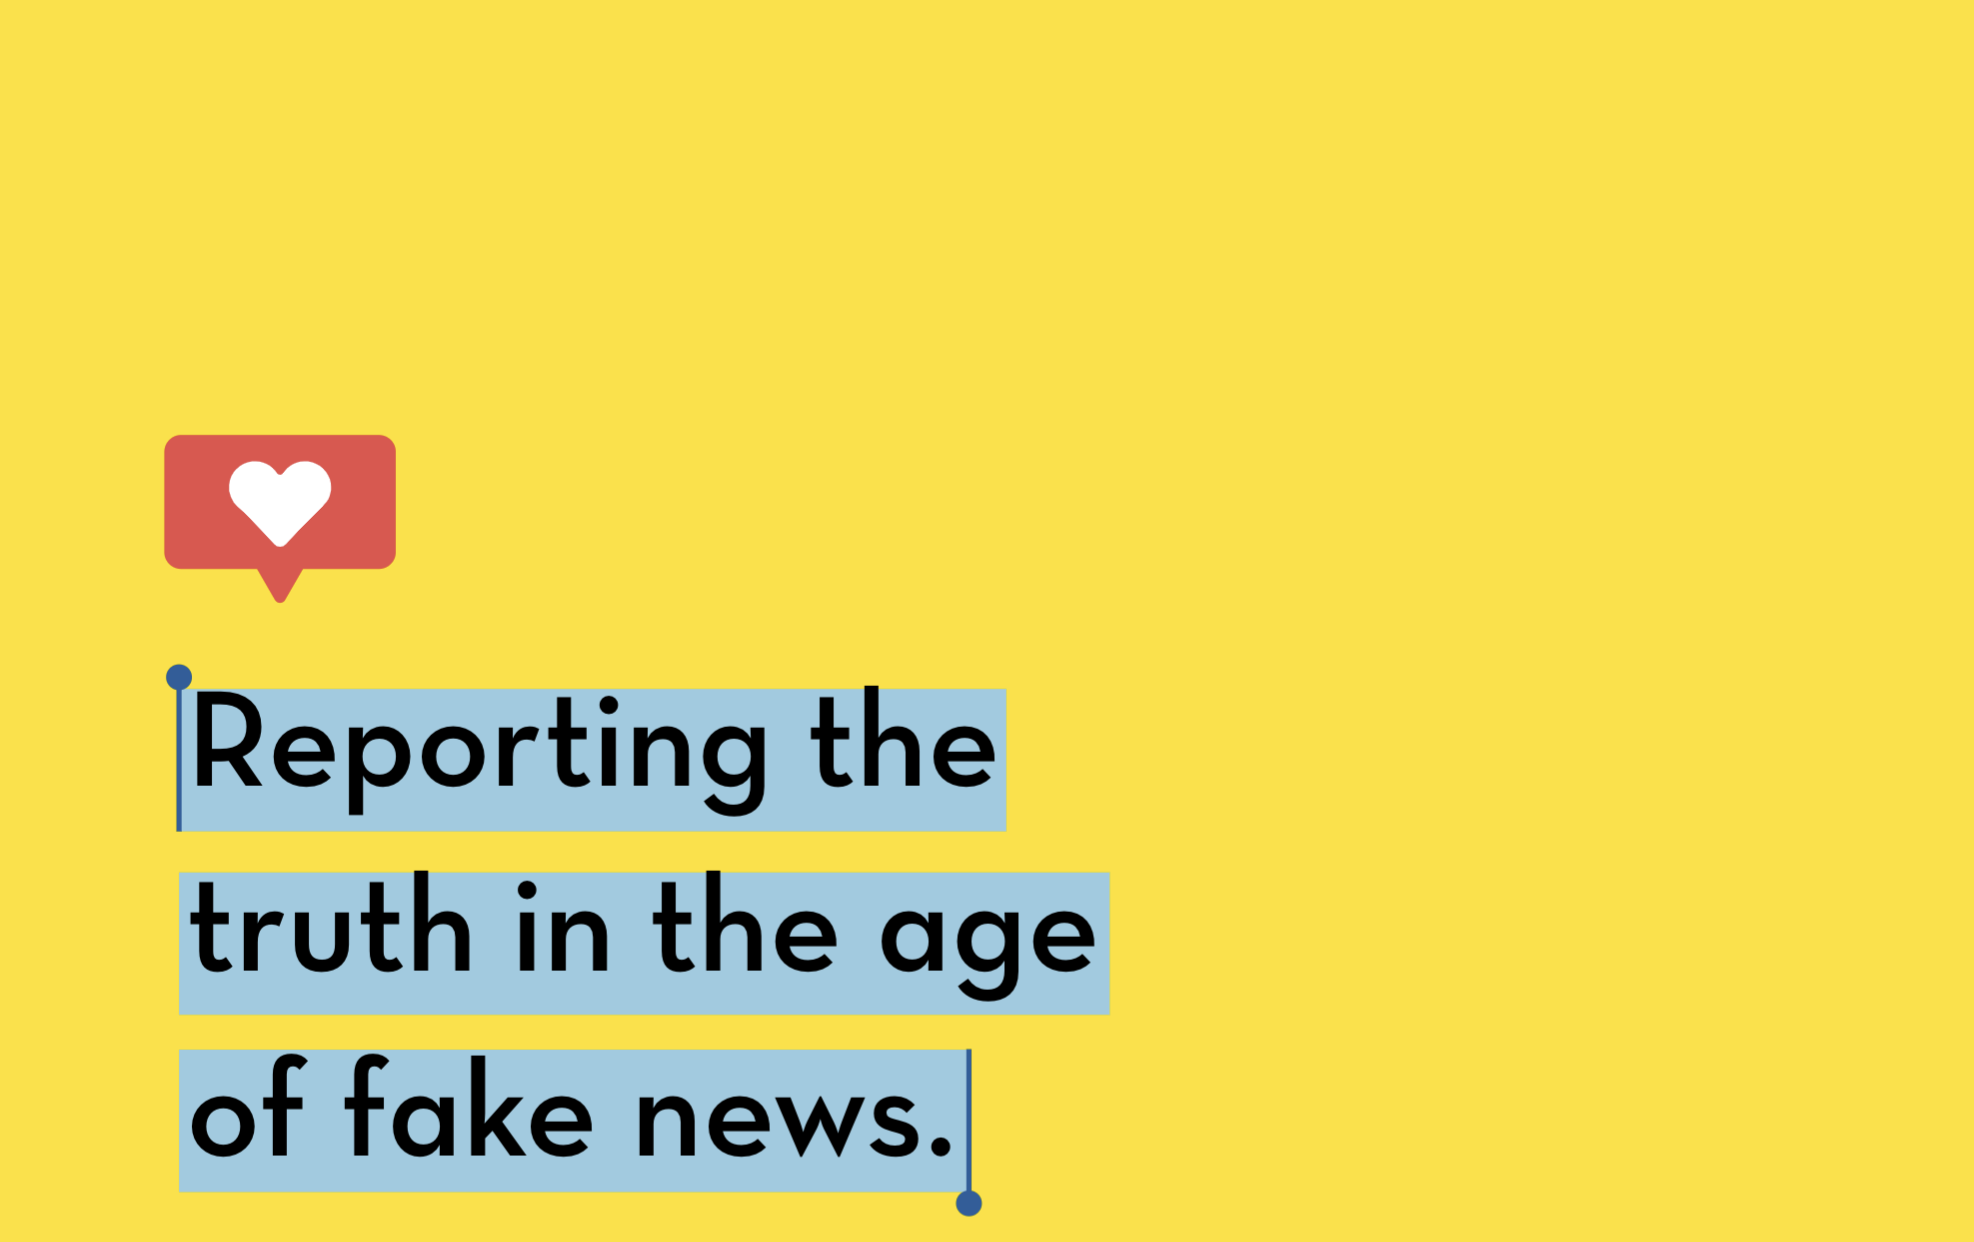 Reporting the truth in the age of fake news